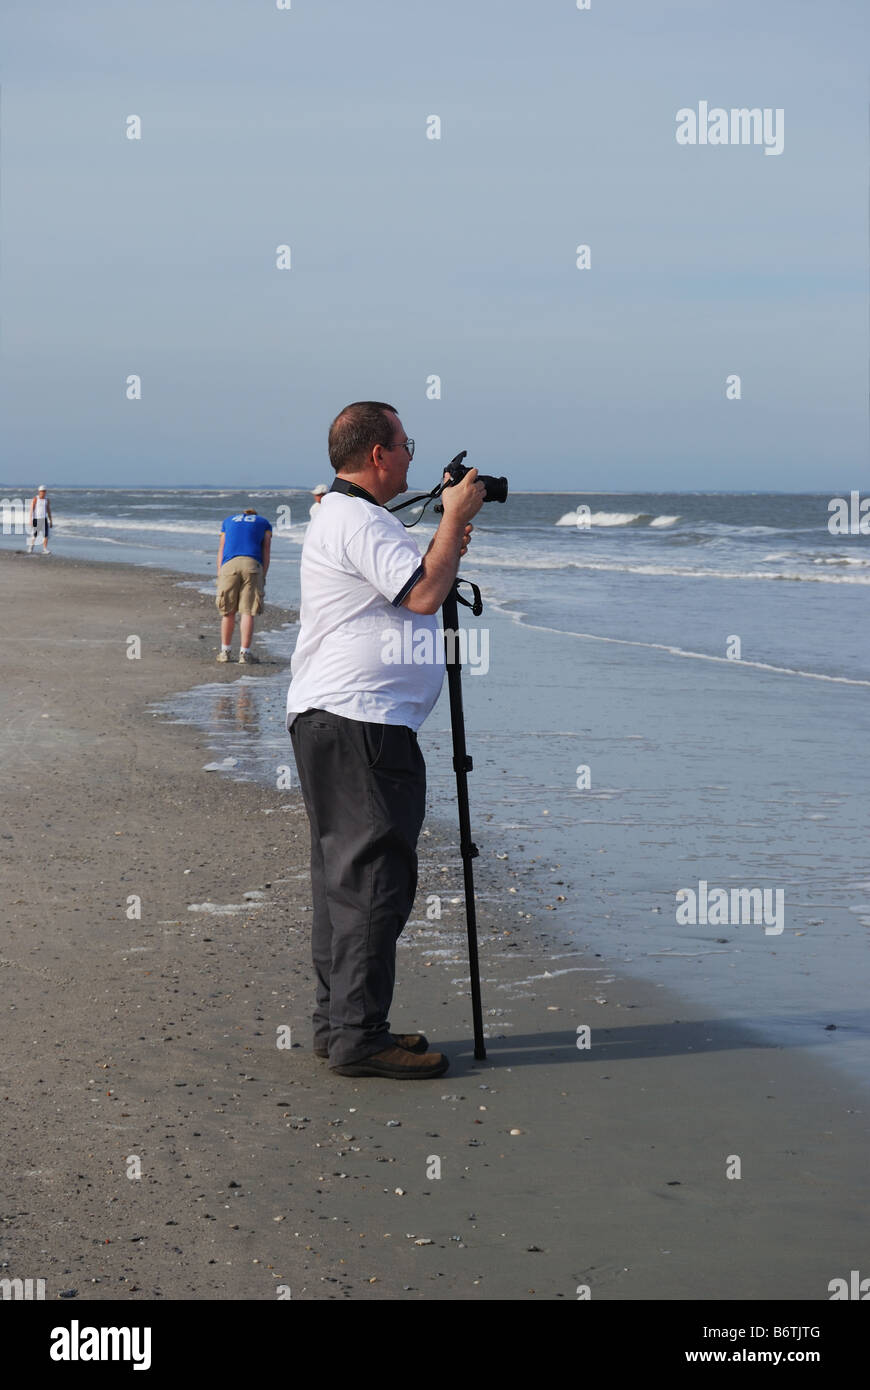 A middle aged overweight photographer prepares to take pictures of the Atlantic Ocean.  Photo by Darrell Young. - Stock Image